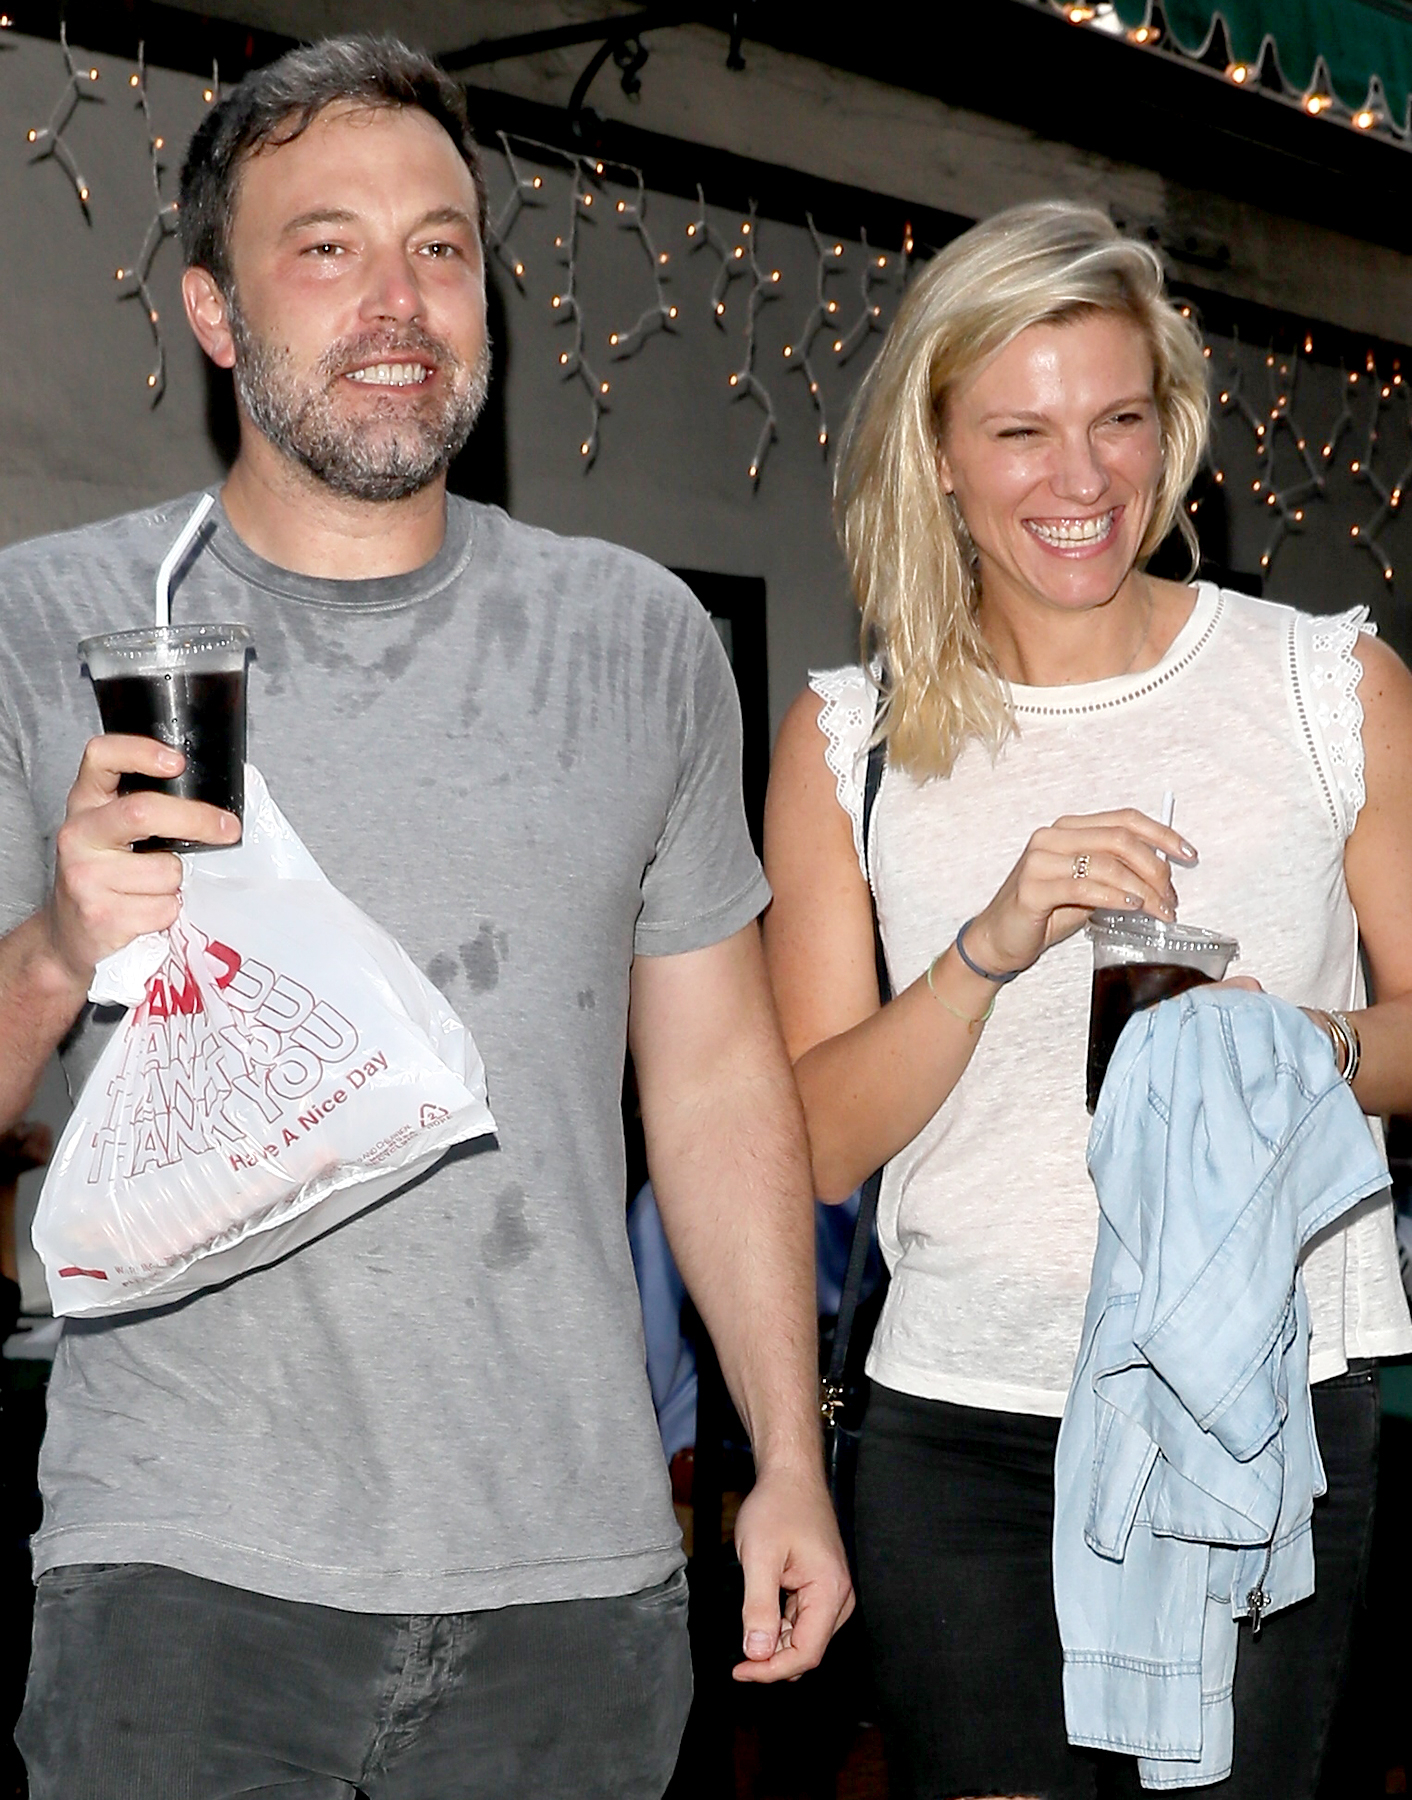 Ben Affleck looks extremely happy exiting Beech Street Cafe restaurant after having some pizza with new girlfriend Lindsay Shookus on July 10, 2017.